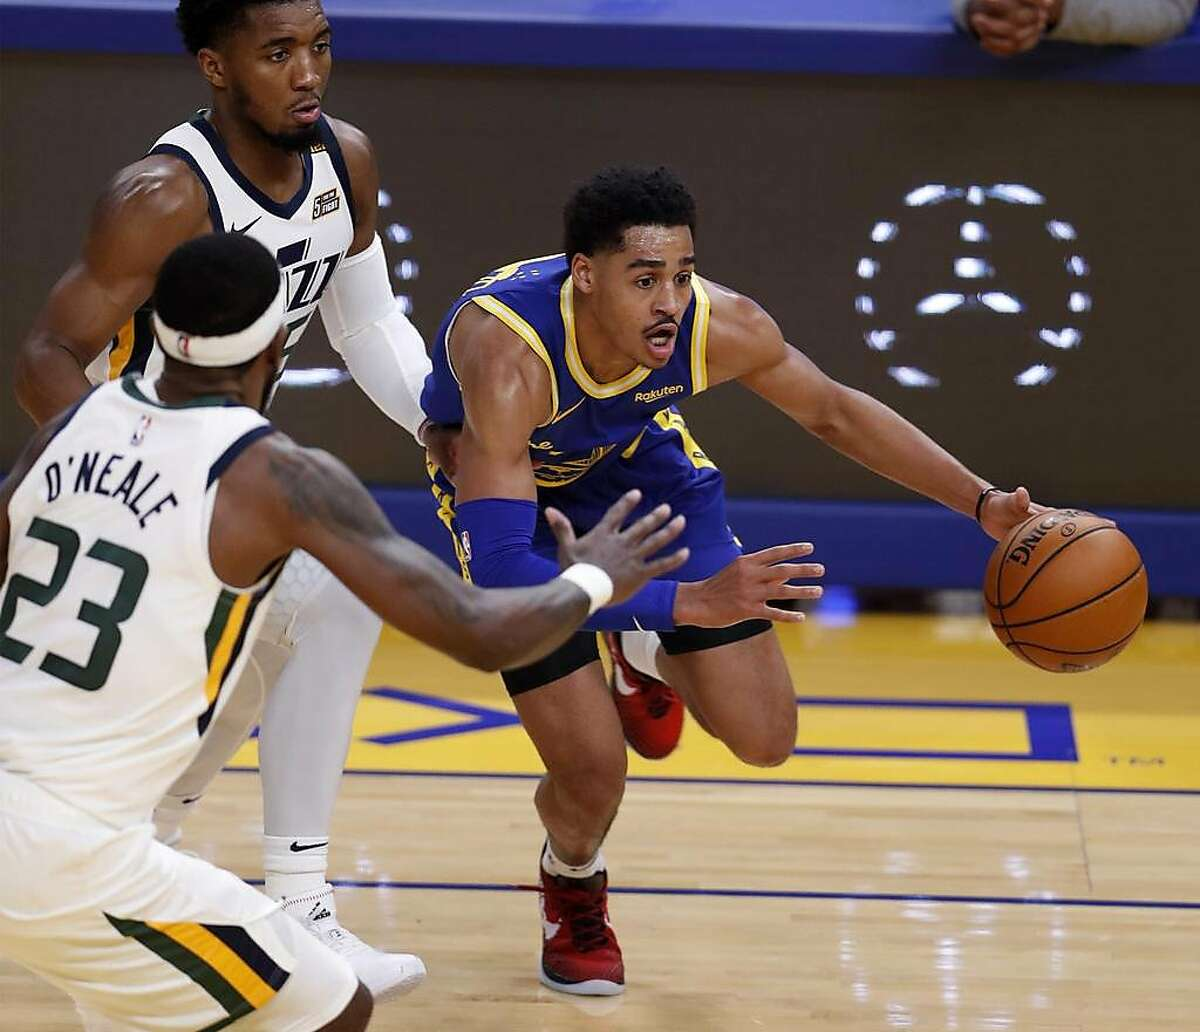 Warriors guard Jordan Poole drives around Jazz guard Donovan Mitchell (rear) during the second quarter of Golden State's victory at Chase Center.